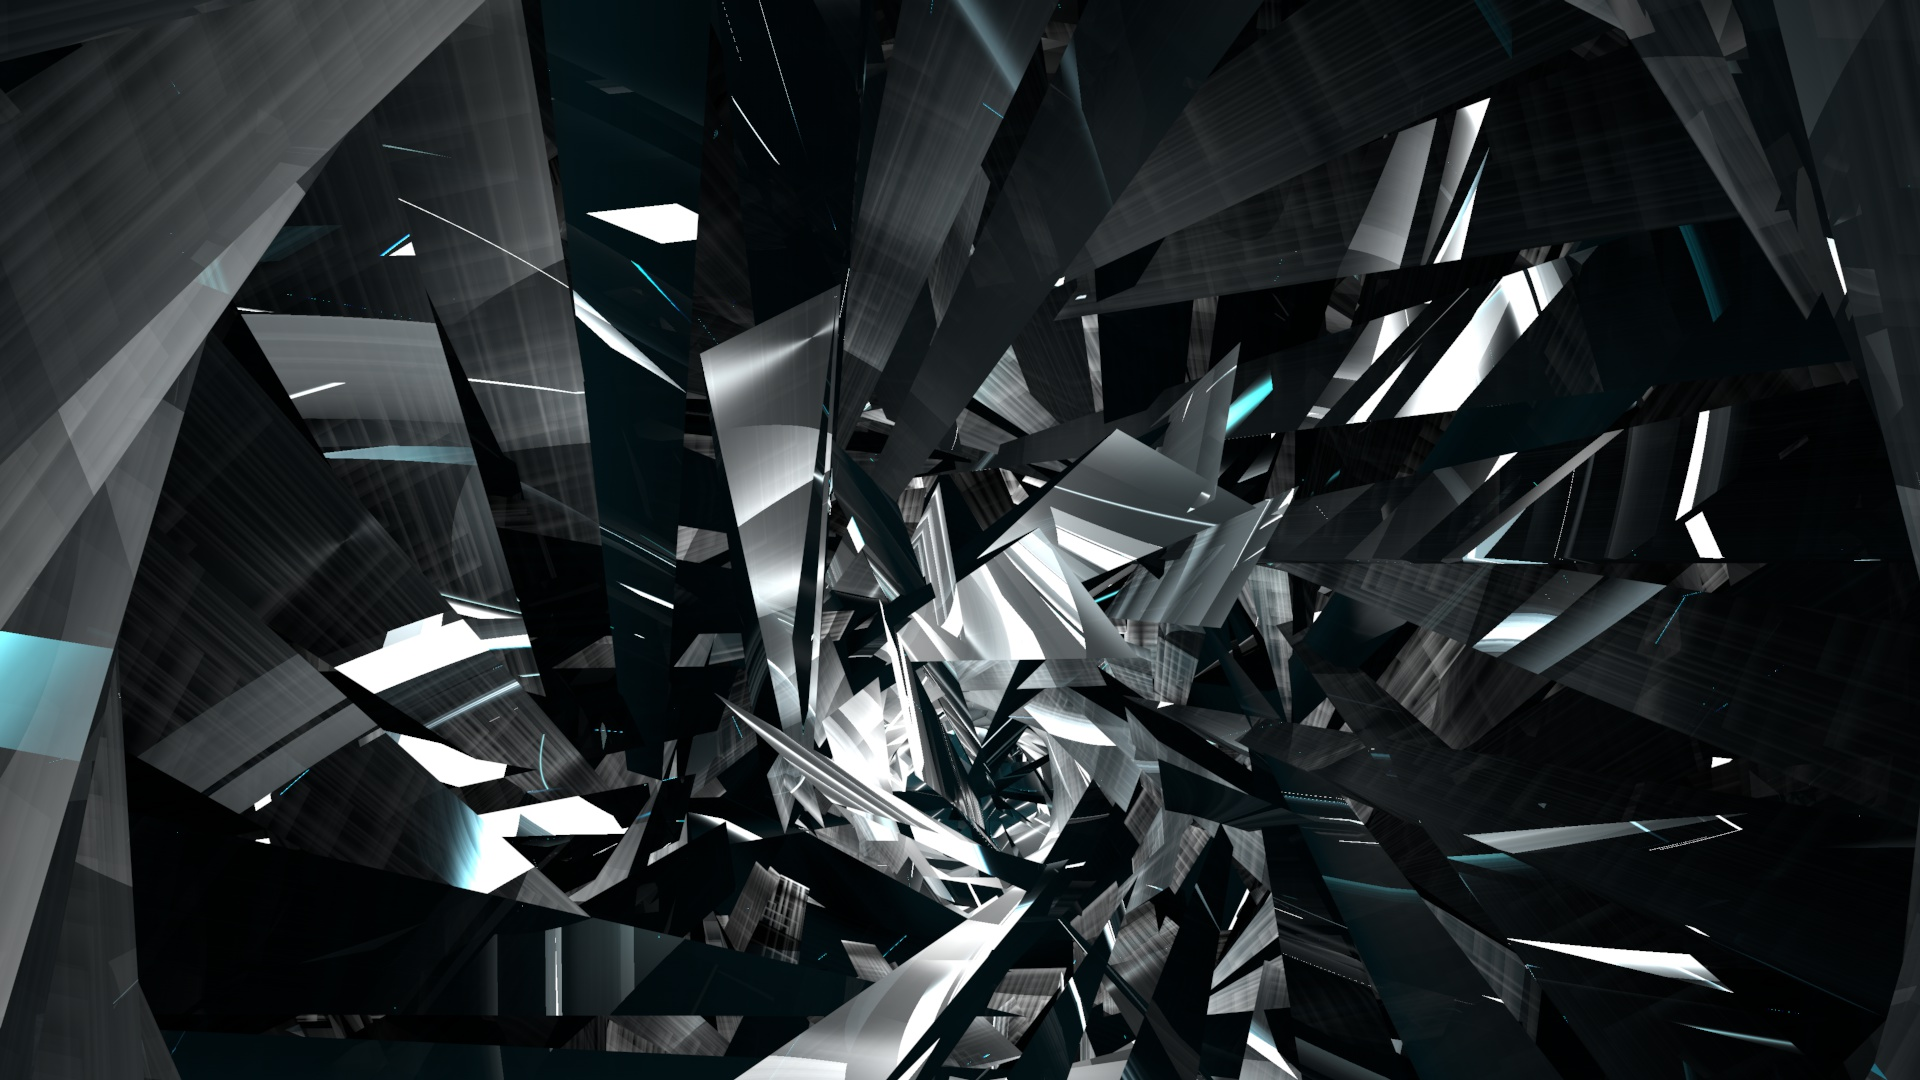 Shattered Glass Wallpaper 2 by sykosys on DeviantArt